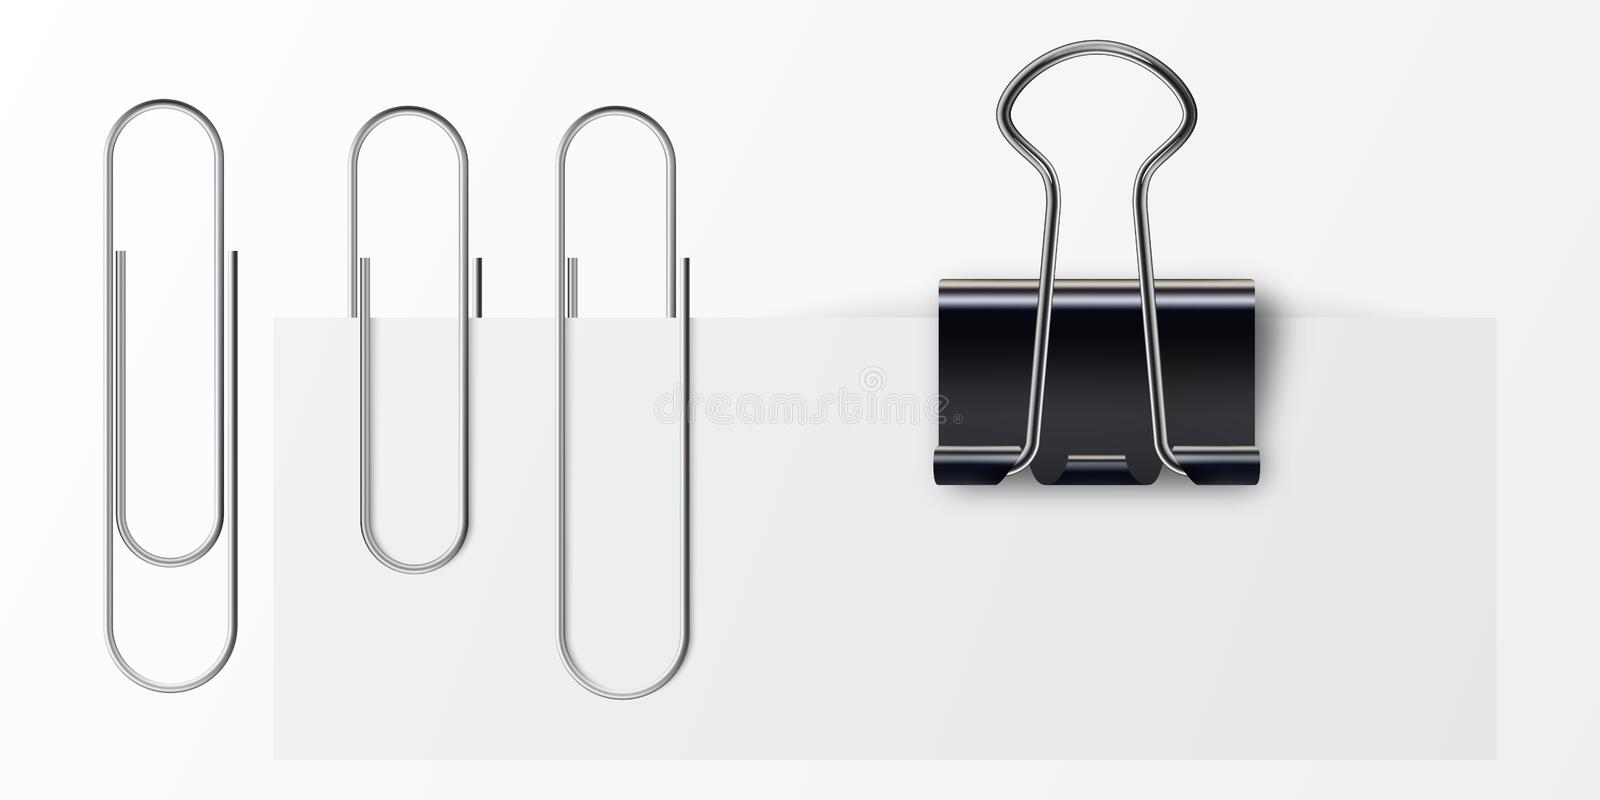 Paper clip on paper. Set of paper clip with black binder. Metal paper clip and paper isolated on white background. Realistic paper clips and black binder stock illustration